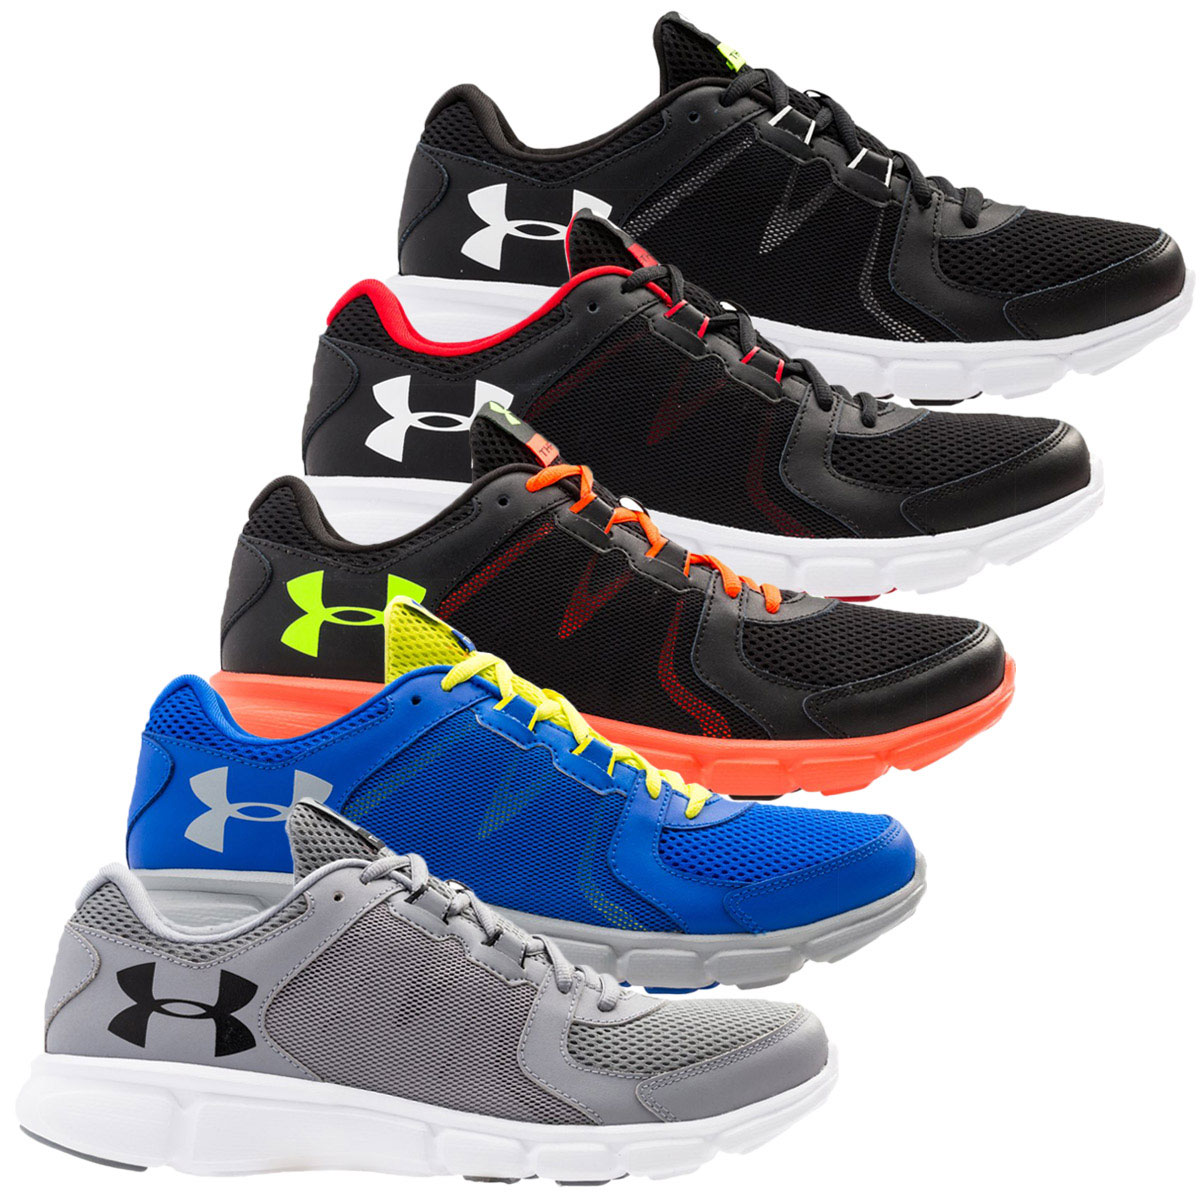 under armour trainers. information under armour trainers e